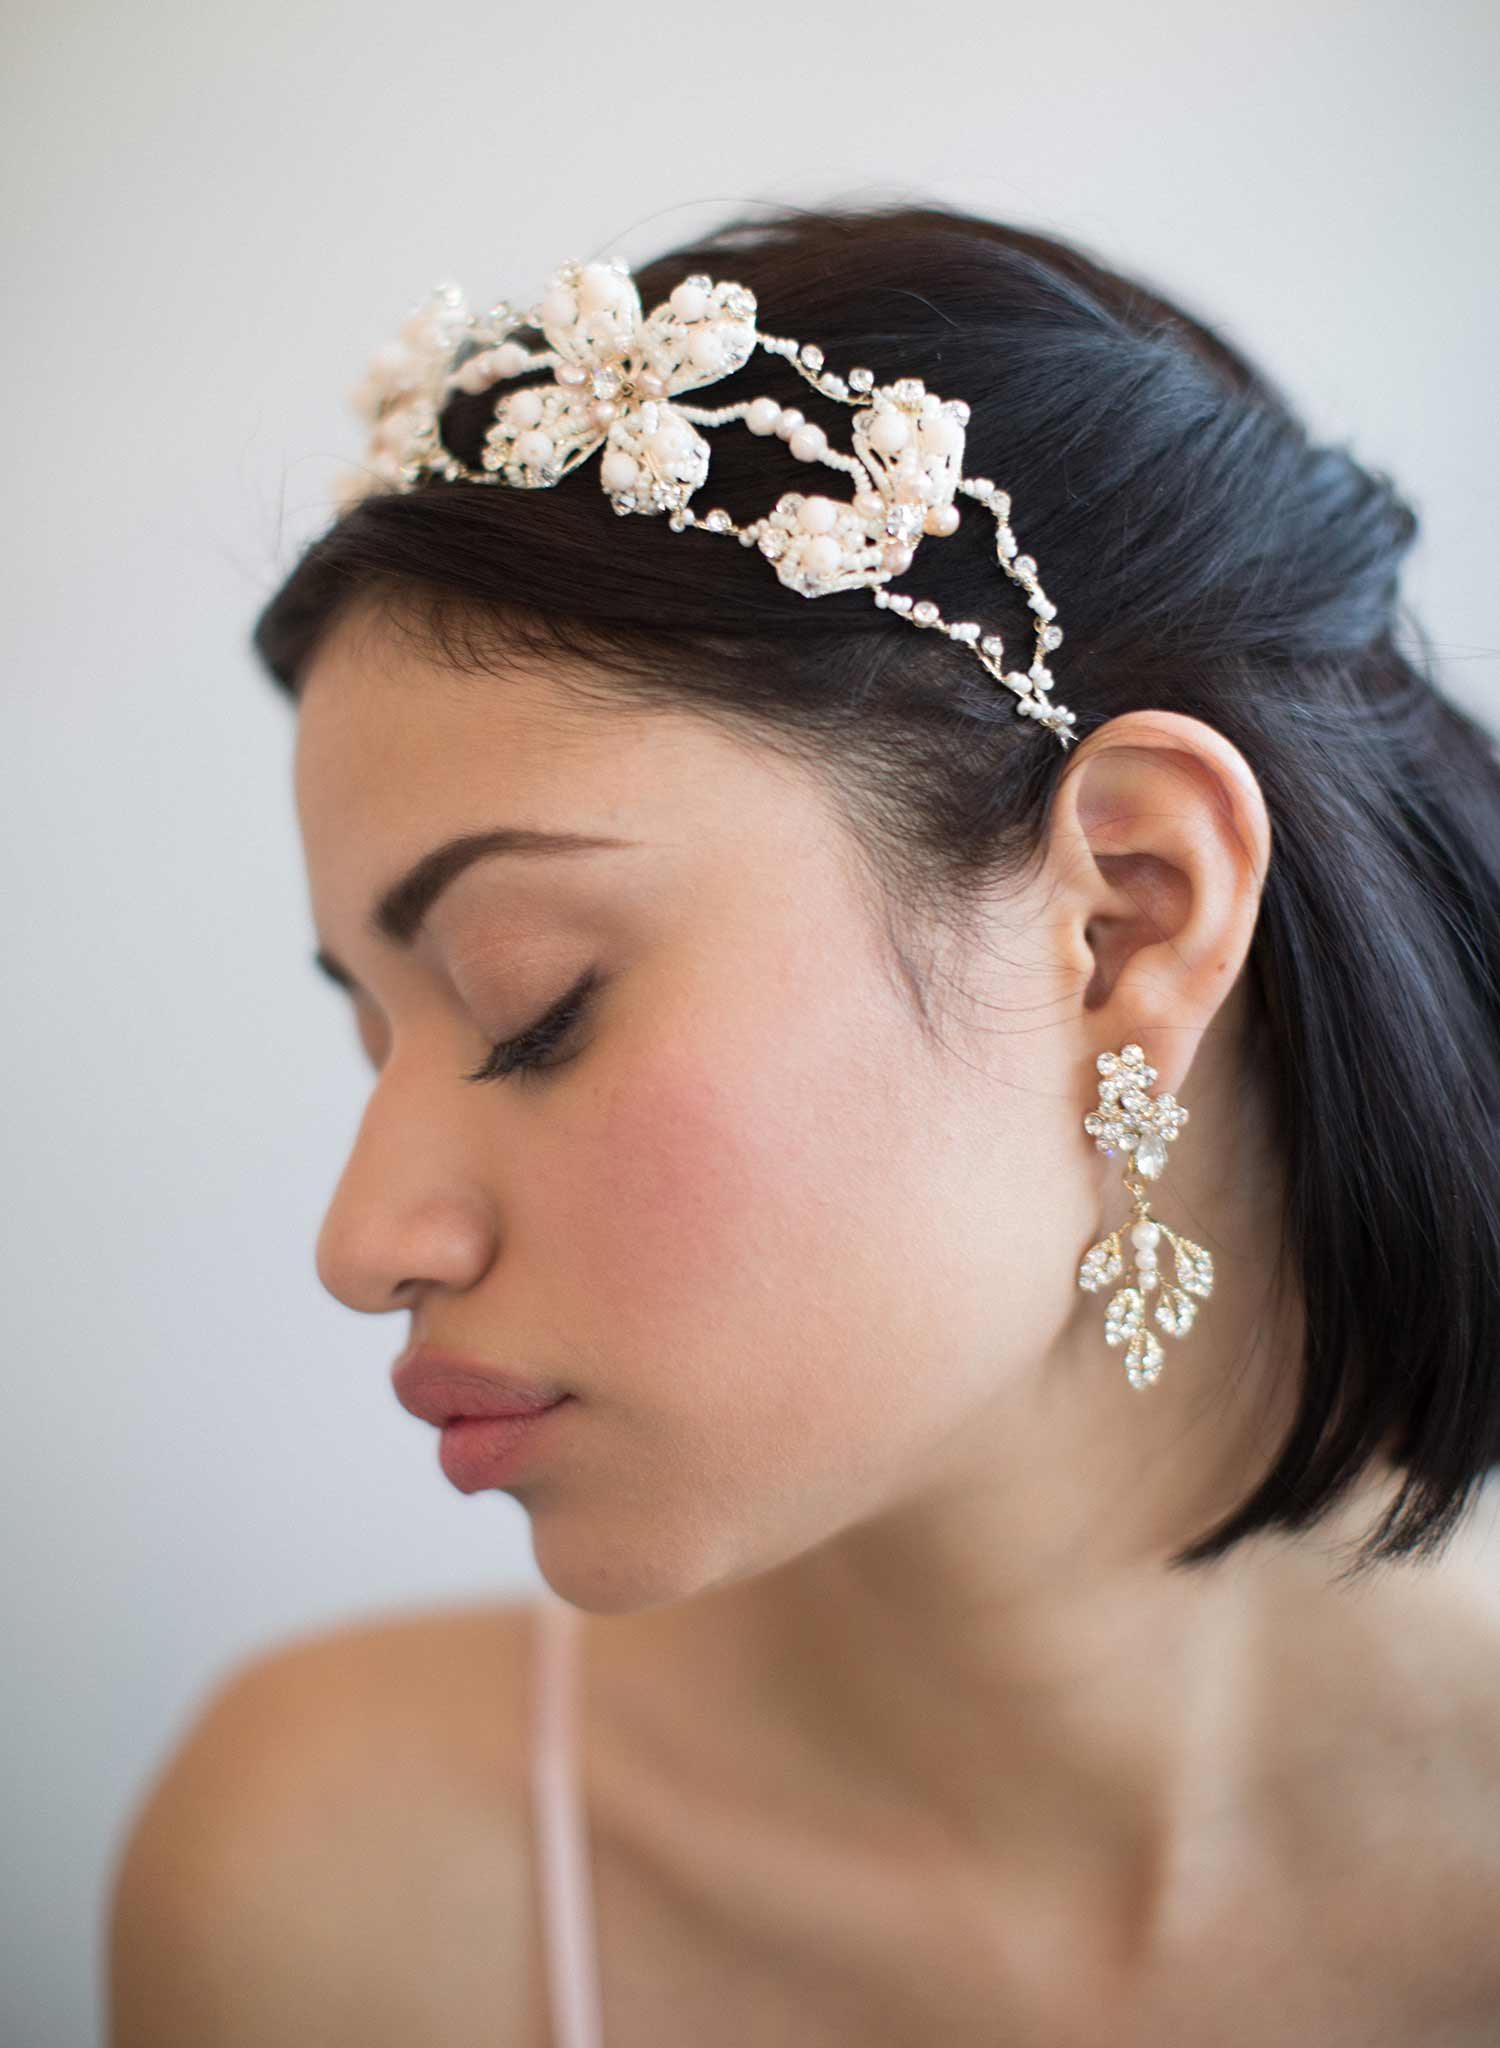 Crystal feather earrings - Style #836